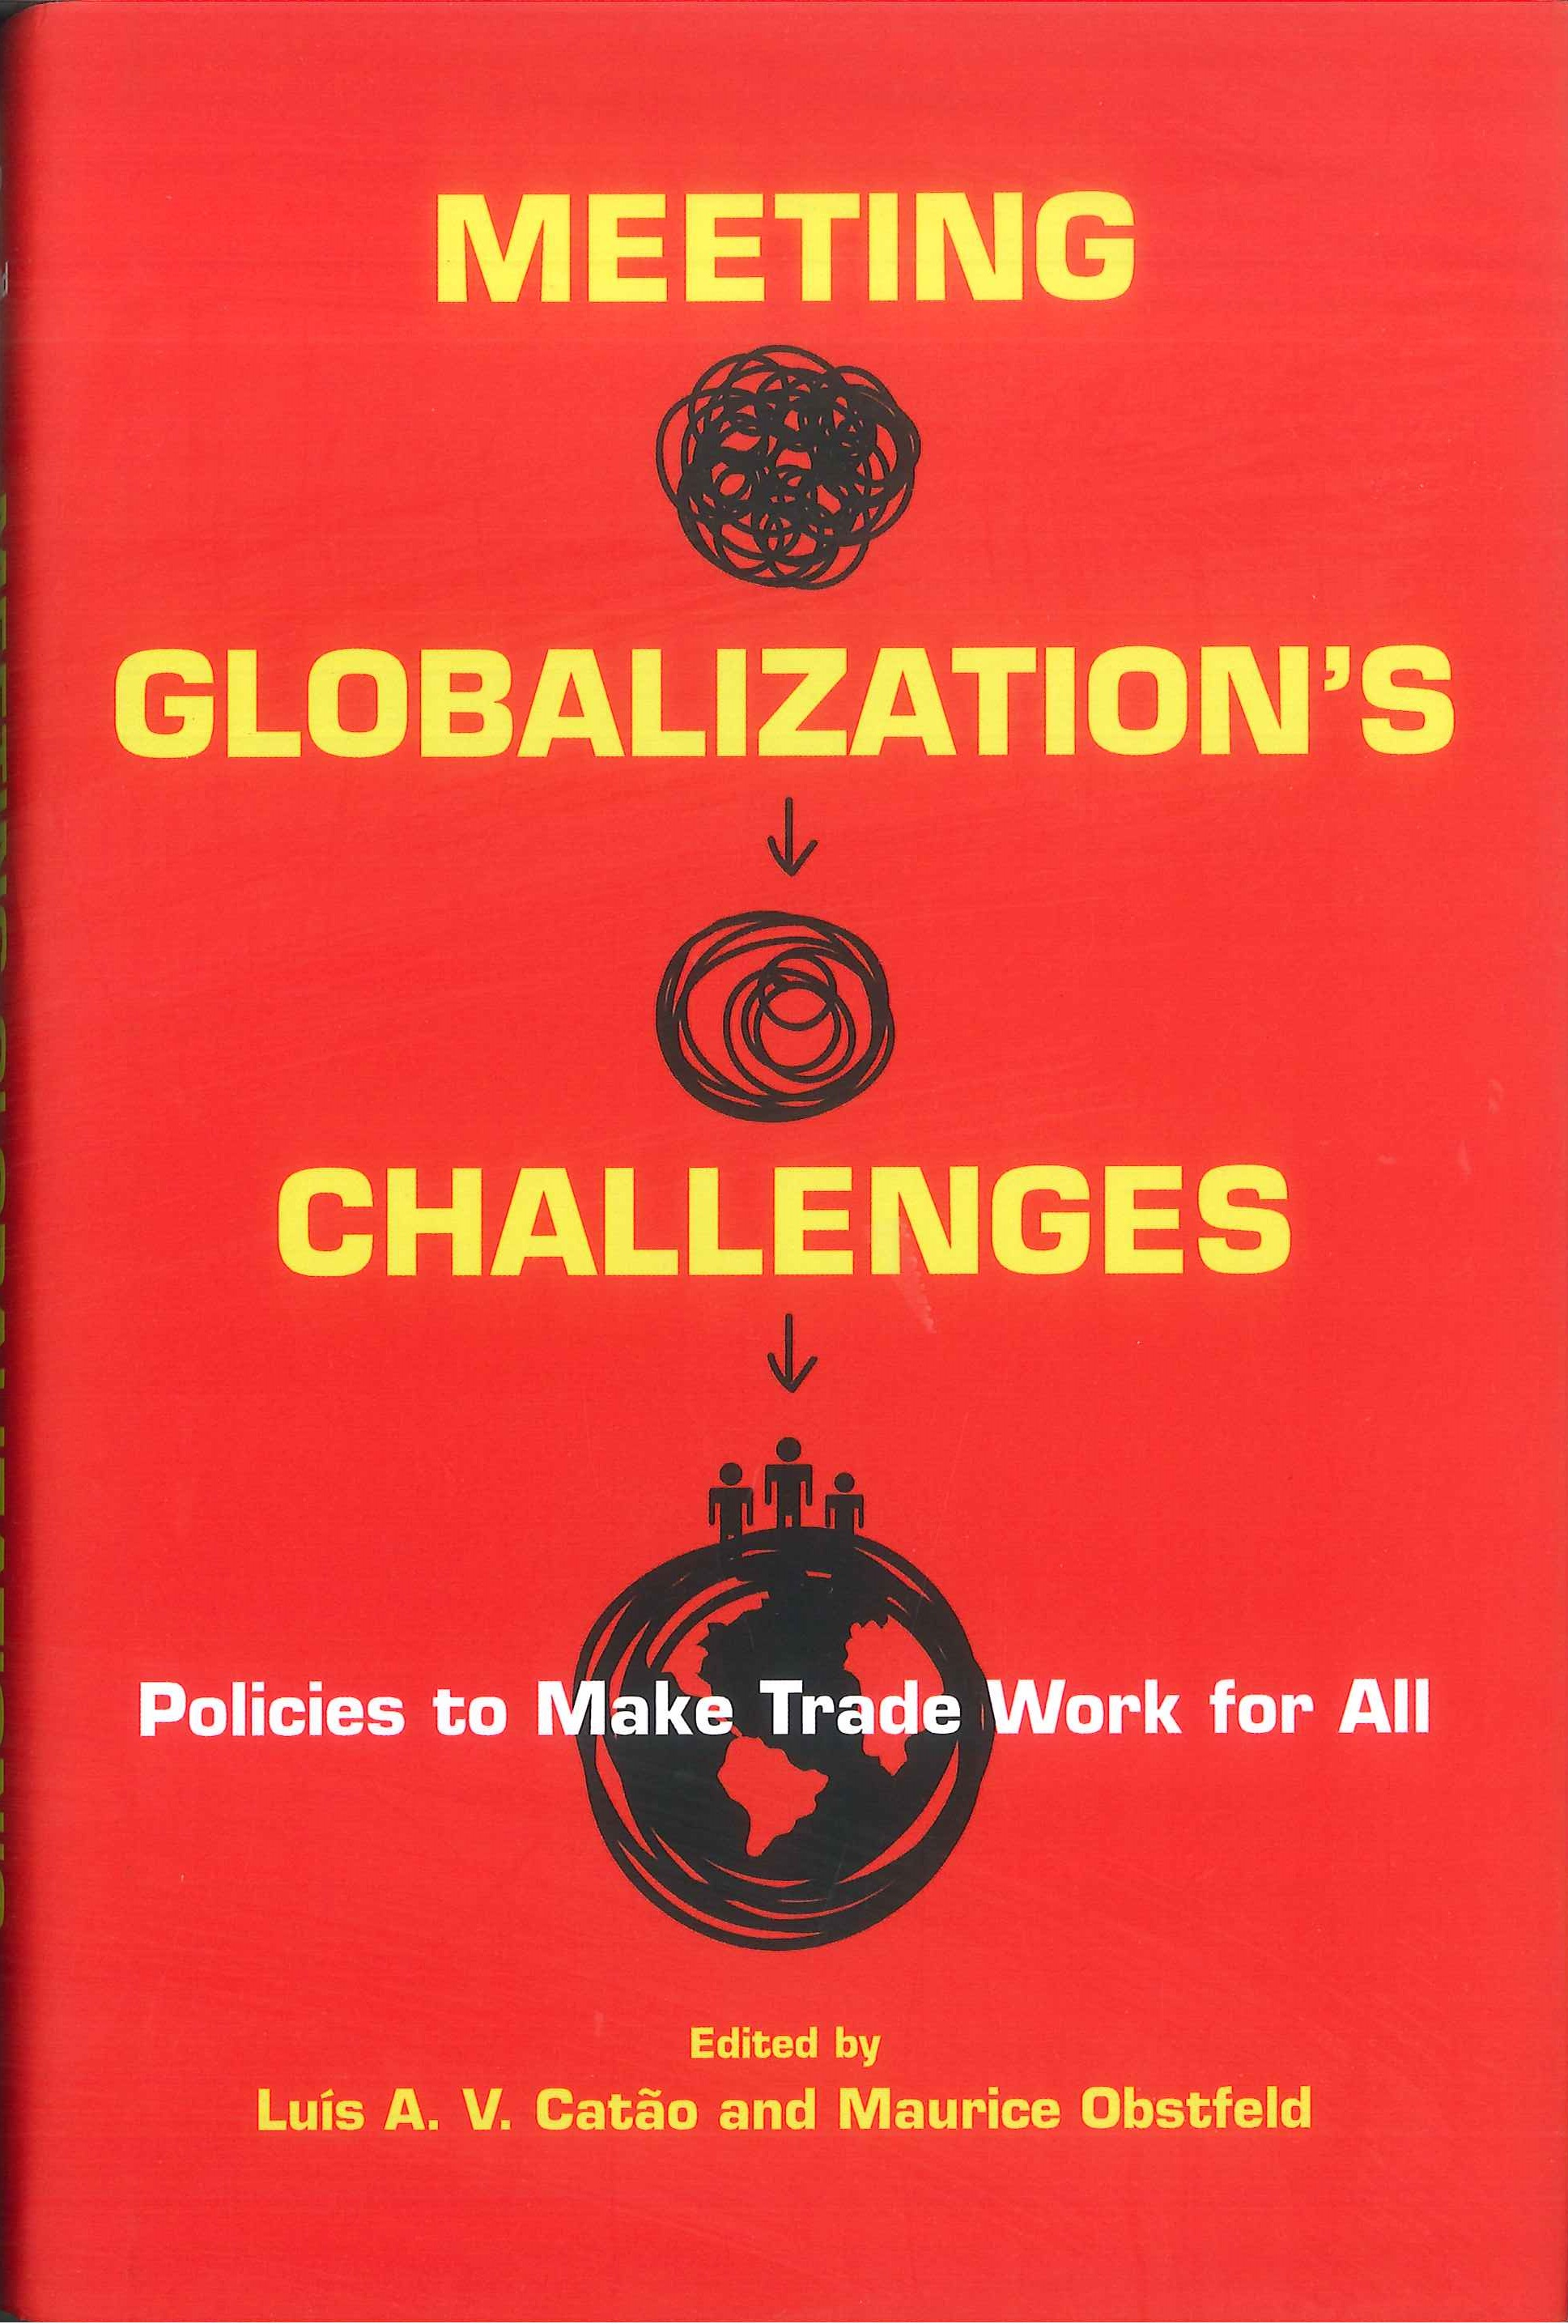 Meeting globalization